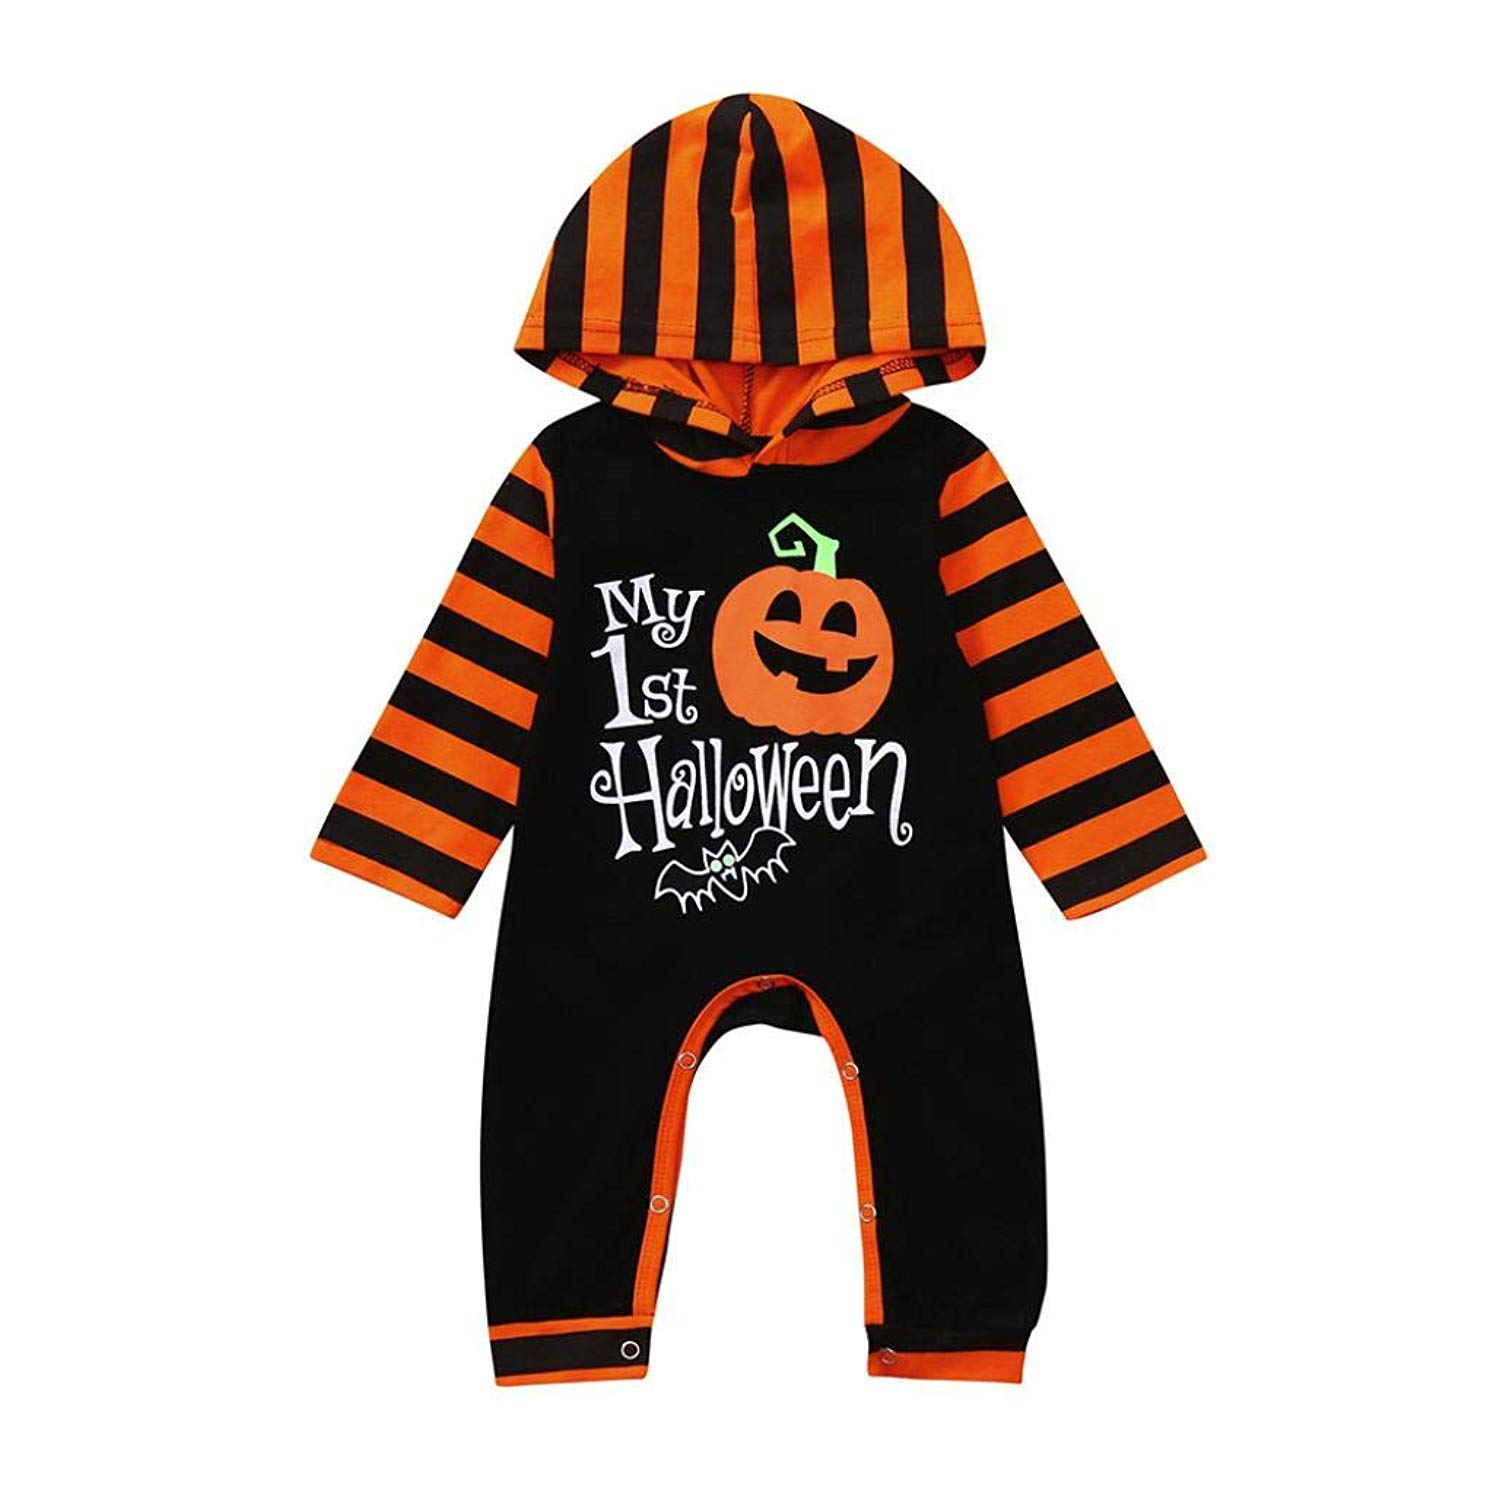 Newborn Baby Boy Girl My 1st Halloween Clothes Jumpsuit Long Sleeve Pumpkin Printed Striped Romper Outfit Set